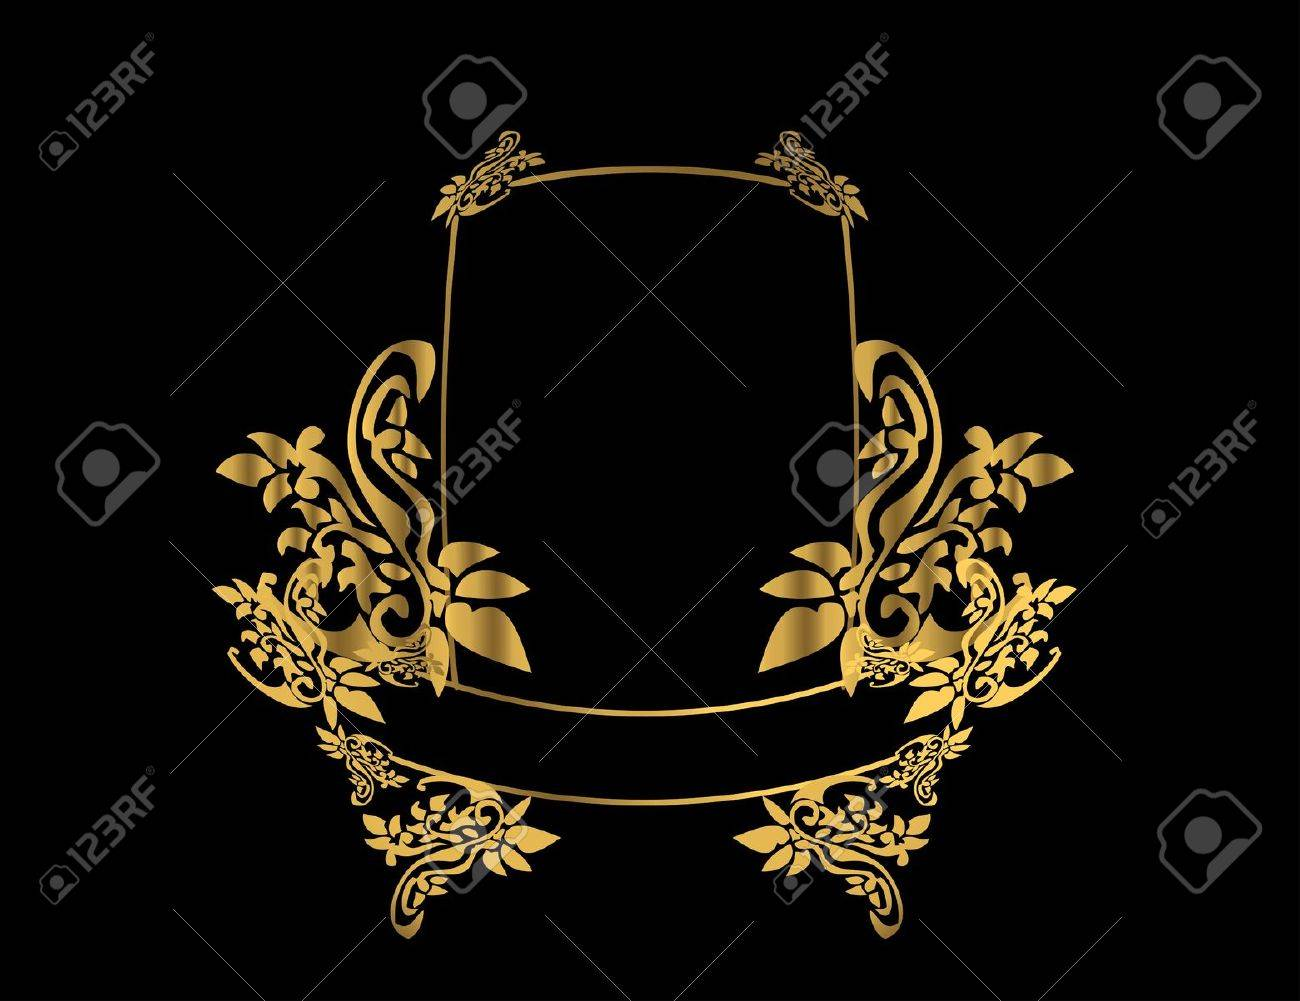 Gold Floral Frame On A Black Background Stock Photo Picture And